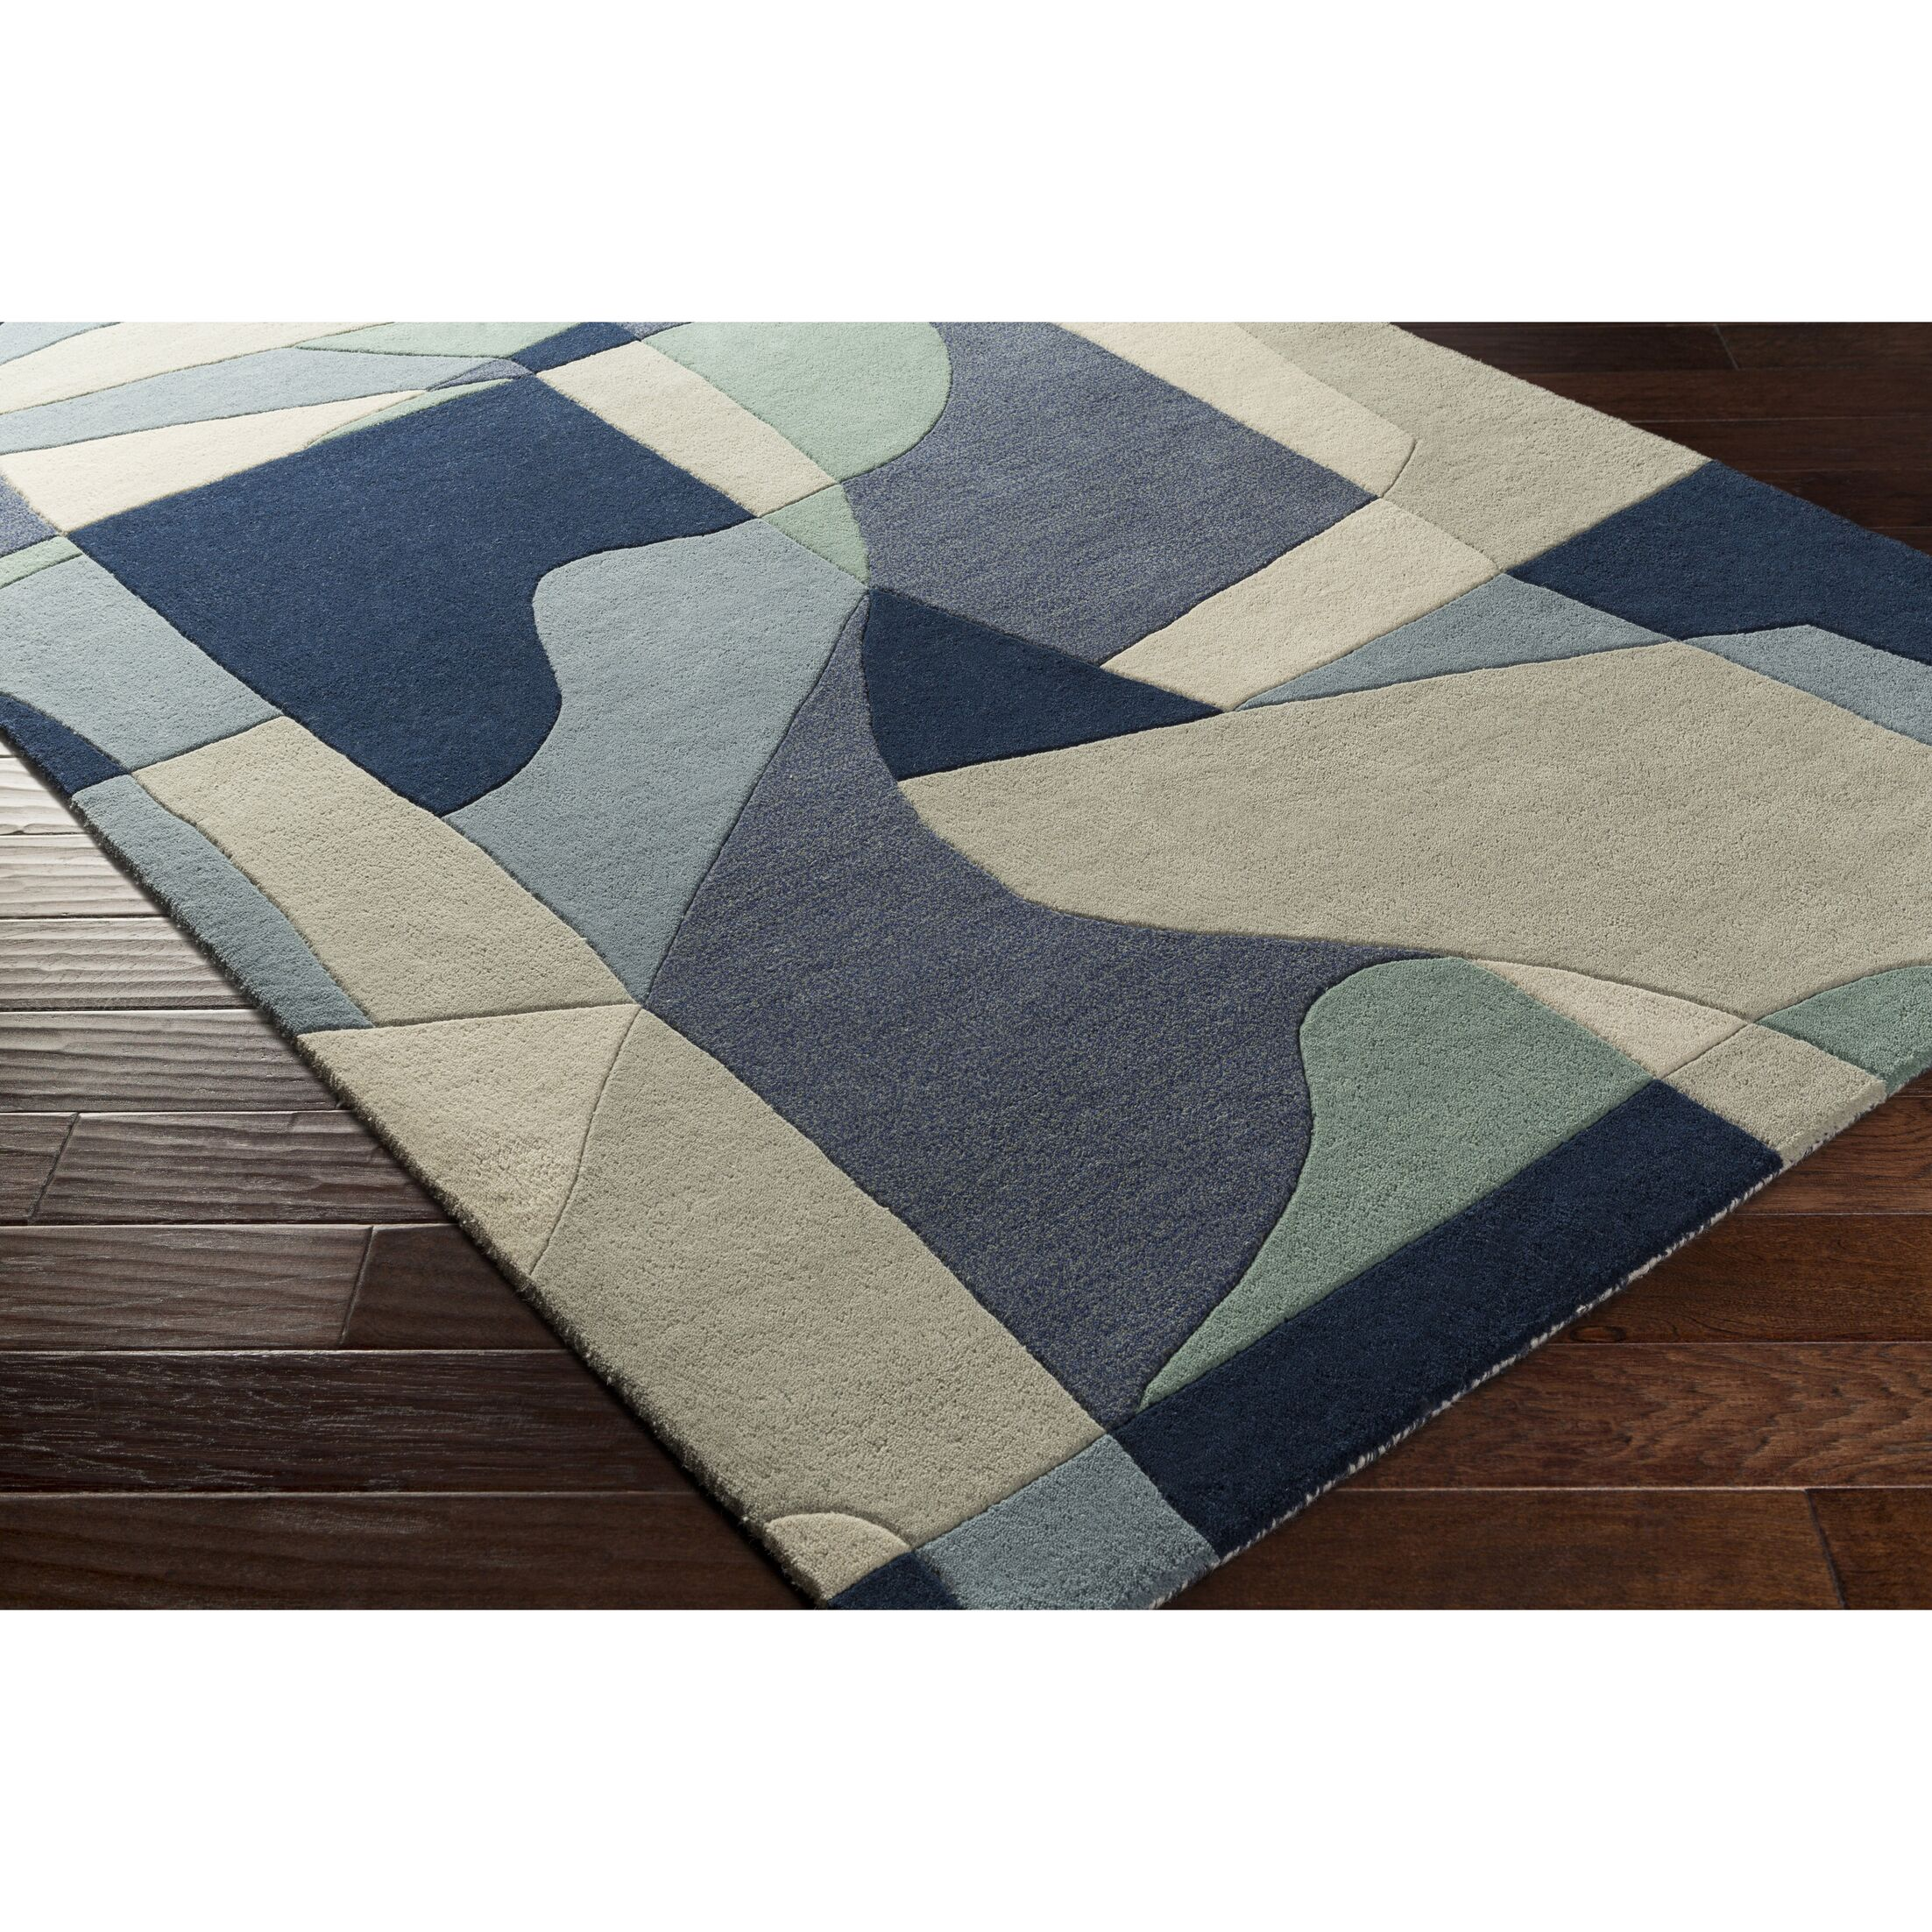 Dewald Hand-Tufted Blue Area Rug Rug Size: Rectangle 7'6